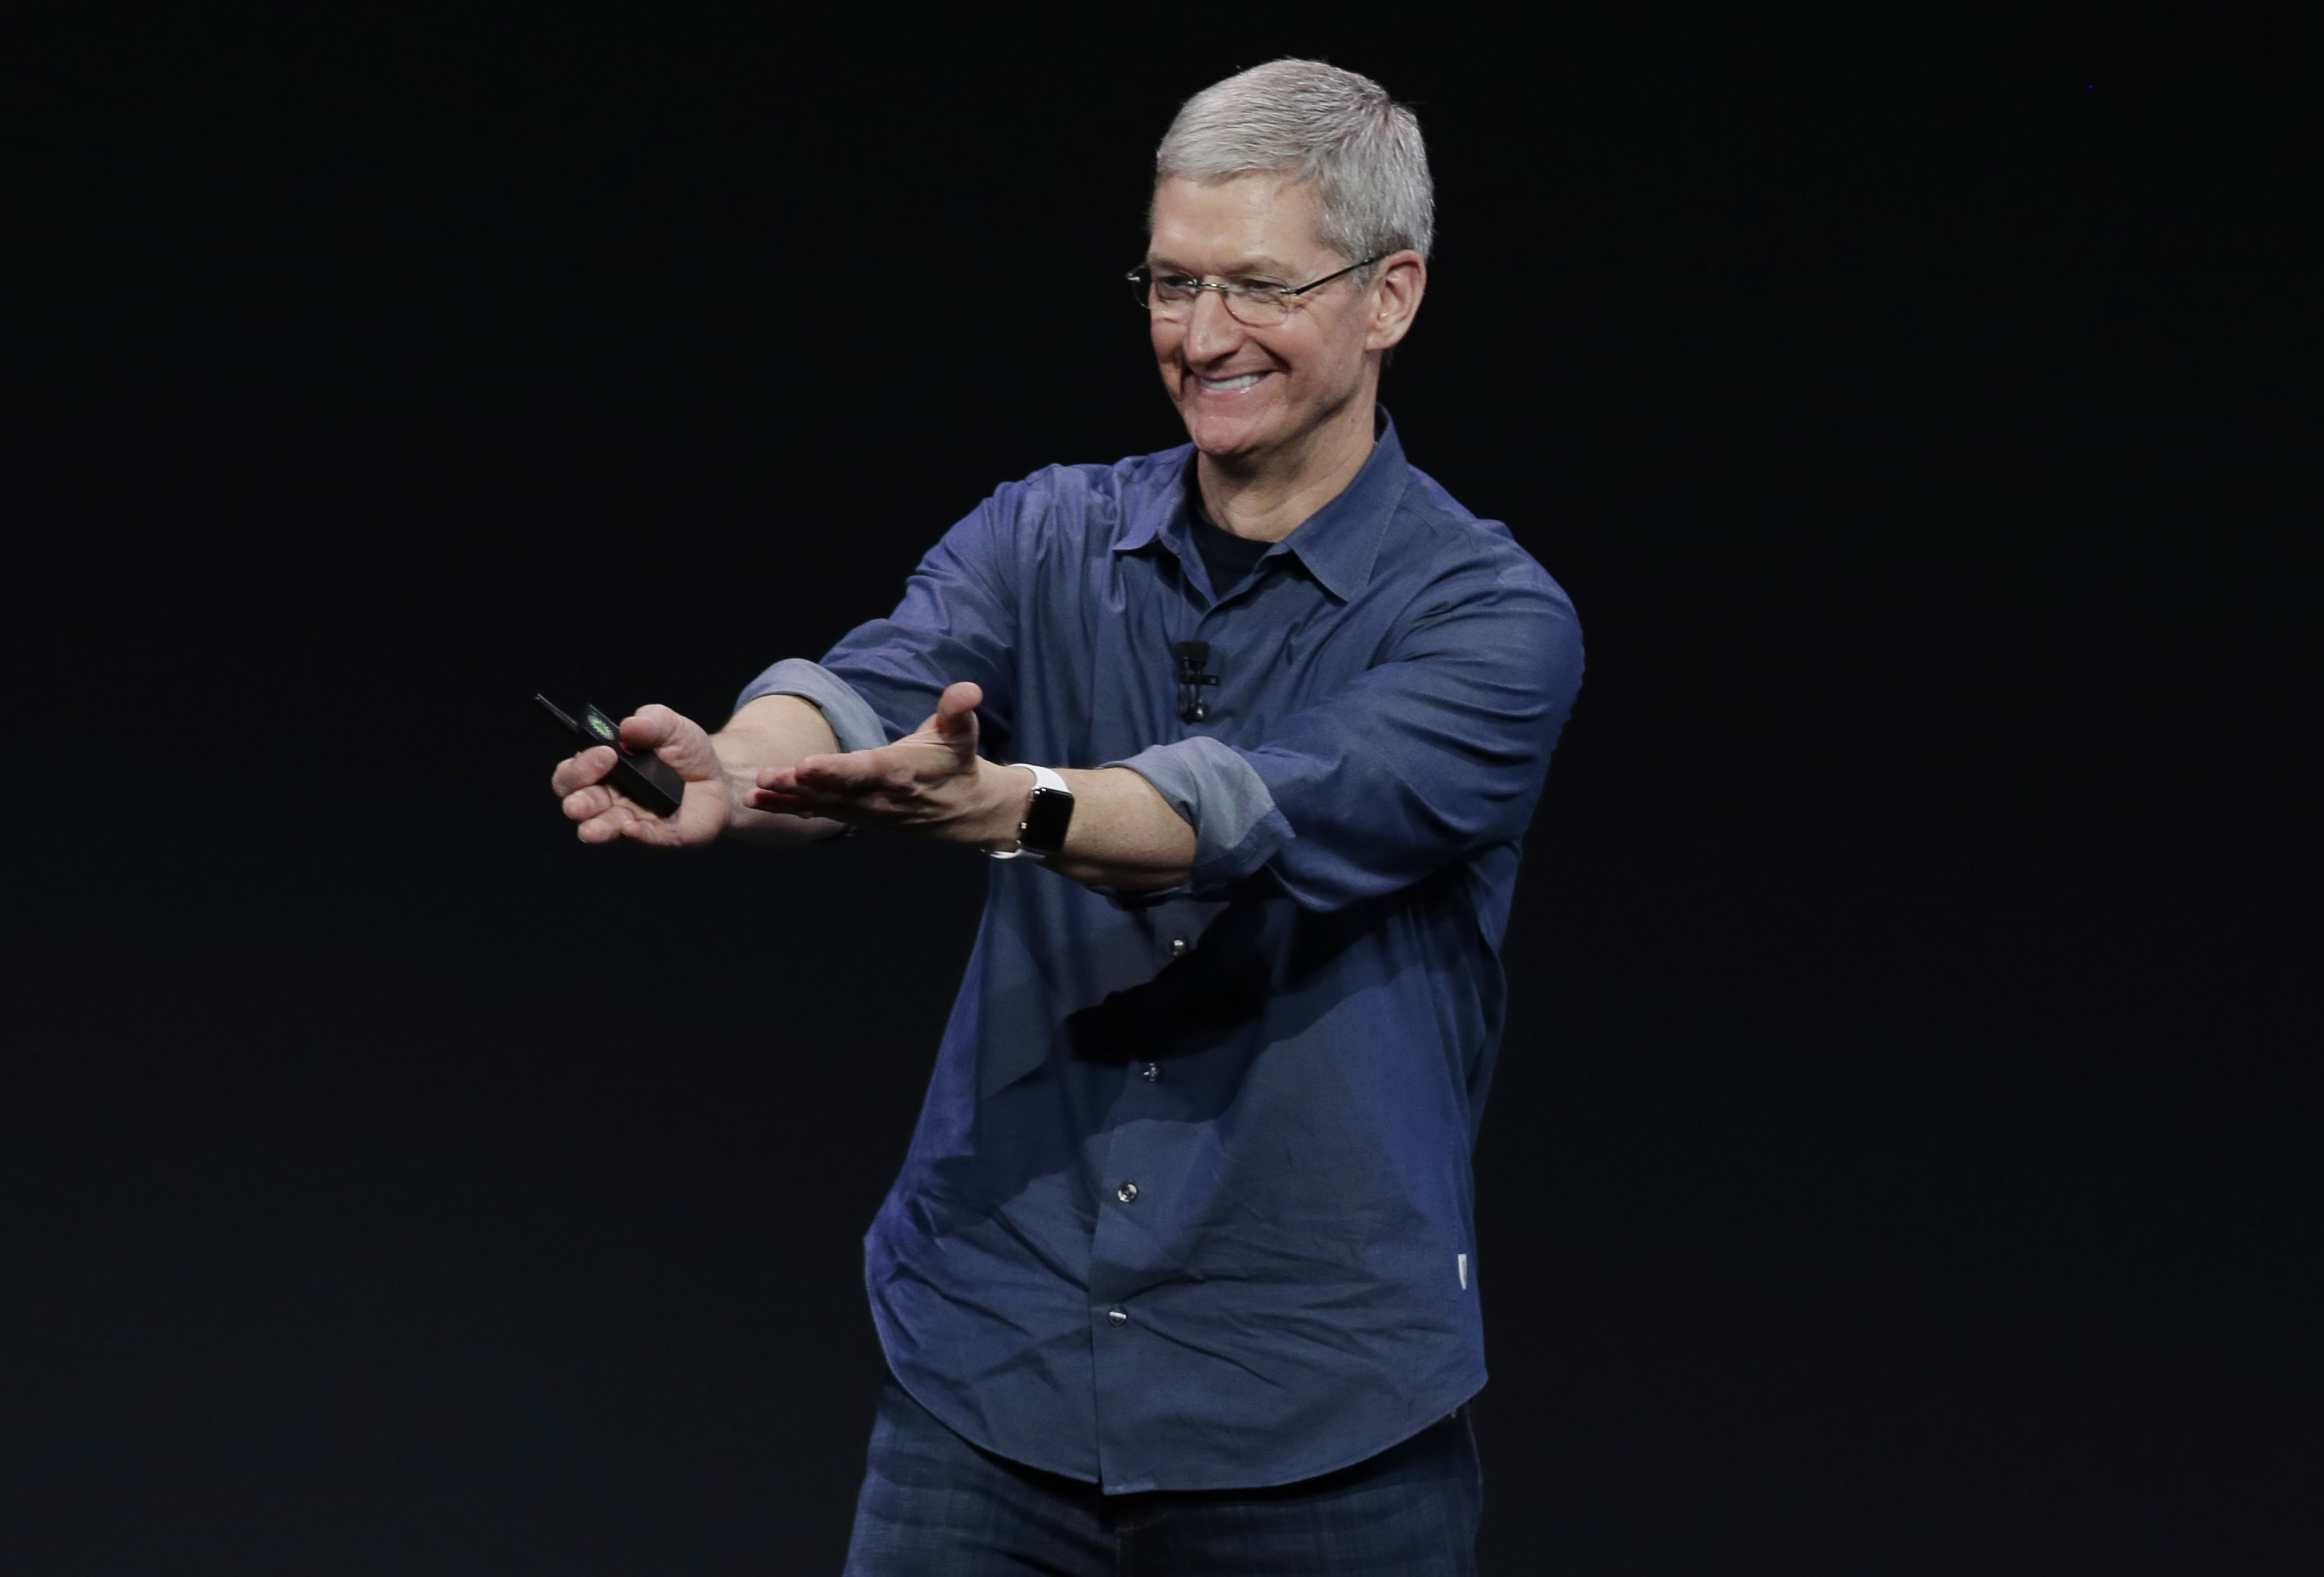 Apple CEO Tim Cook introduces Apple Watch , which he is wearing on his wrist, on Tuesday, Sept. 9, 2014, in Cupertino, Calif.